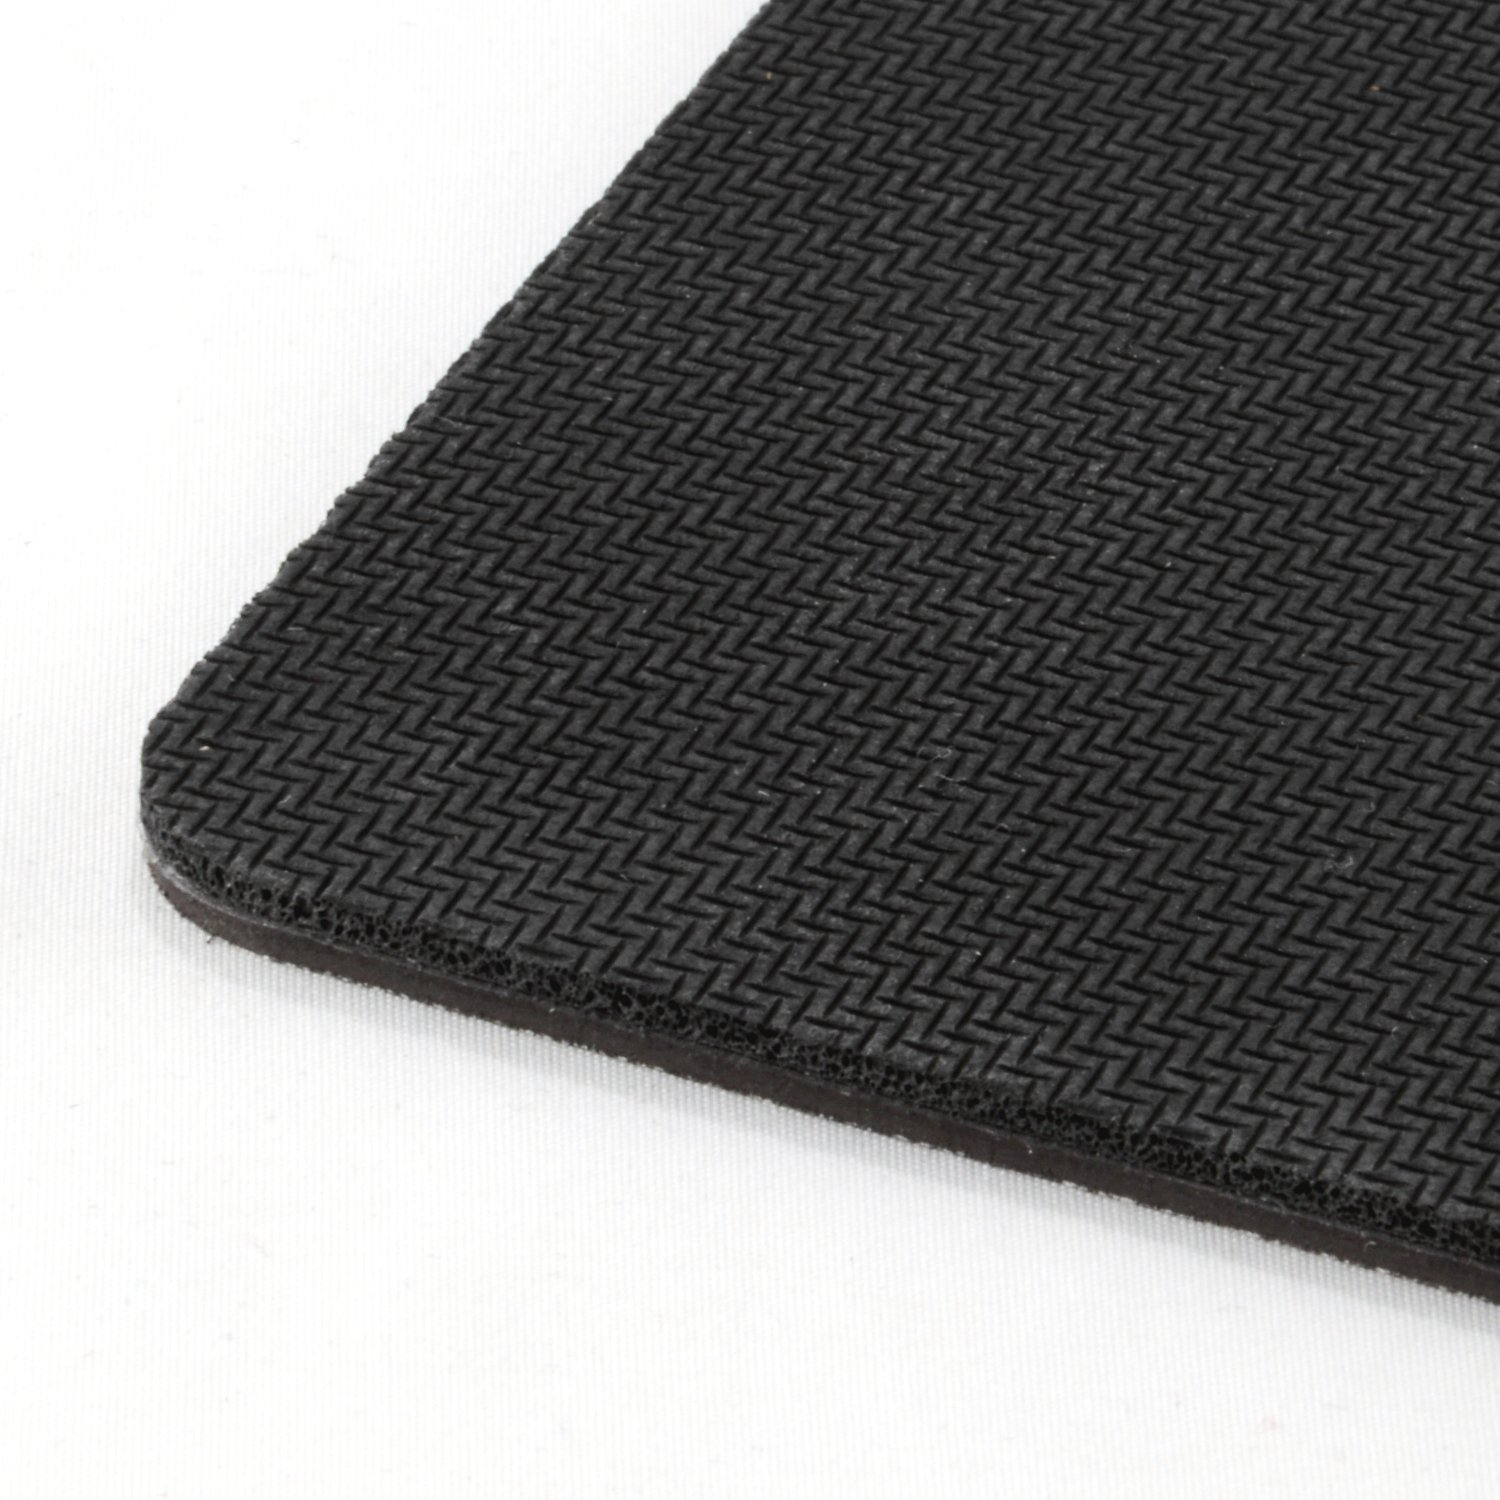 Delcast MT02 Magnetic Non-Slip Project Mat for Smart Phone, Laptop and Electronics Disassembly by Delcast (Image #5)